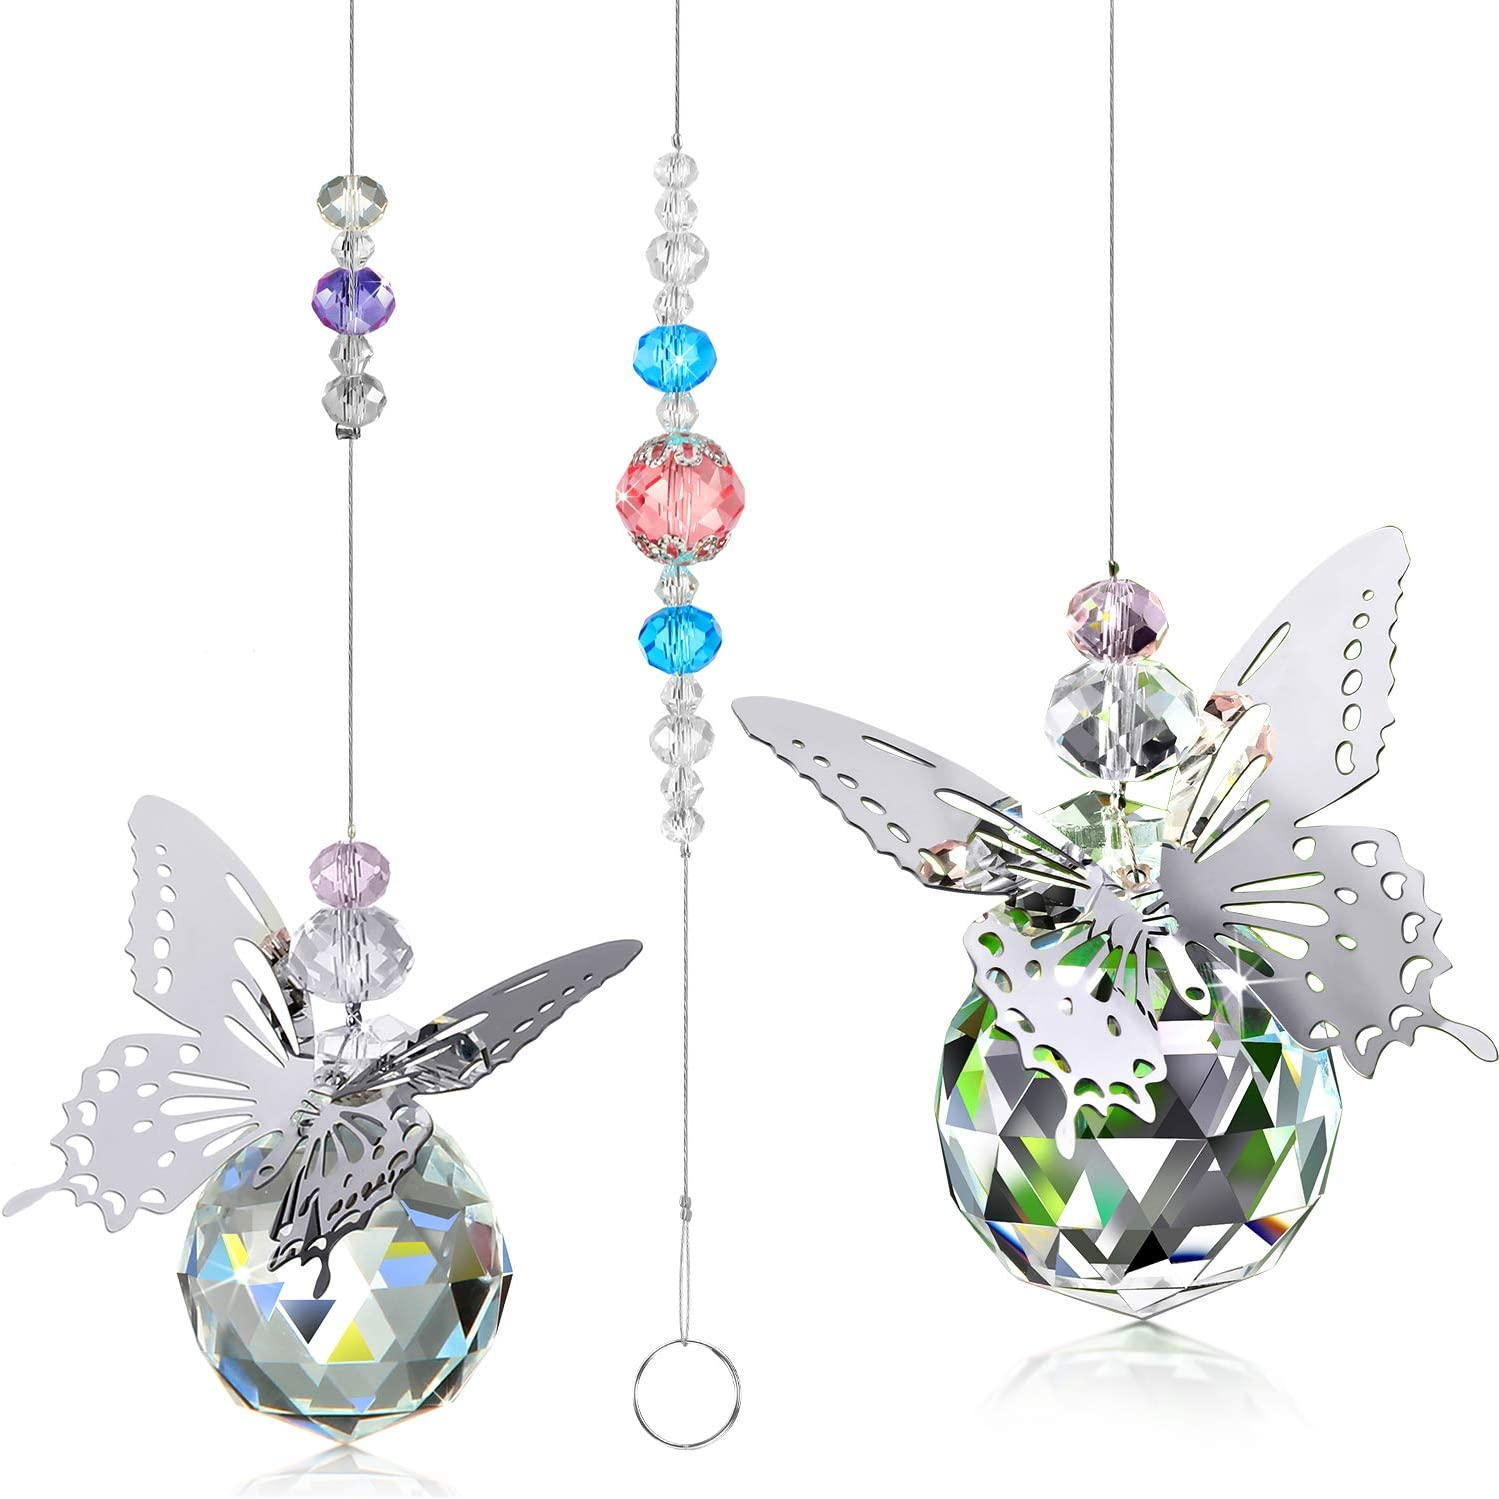 WILLBOND 2 Pieces Colorful Butterfly Pendant Crystal Ball Prism Suncatcher Glass Crystal Ball Chakra Suncatcher with Beads Hanging Crystals/ Window Ornament/ for Home Office Garden Decoration